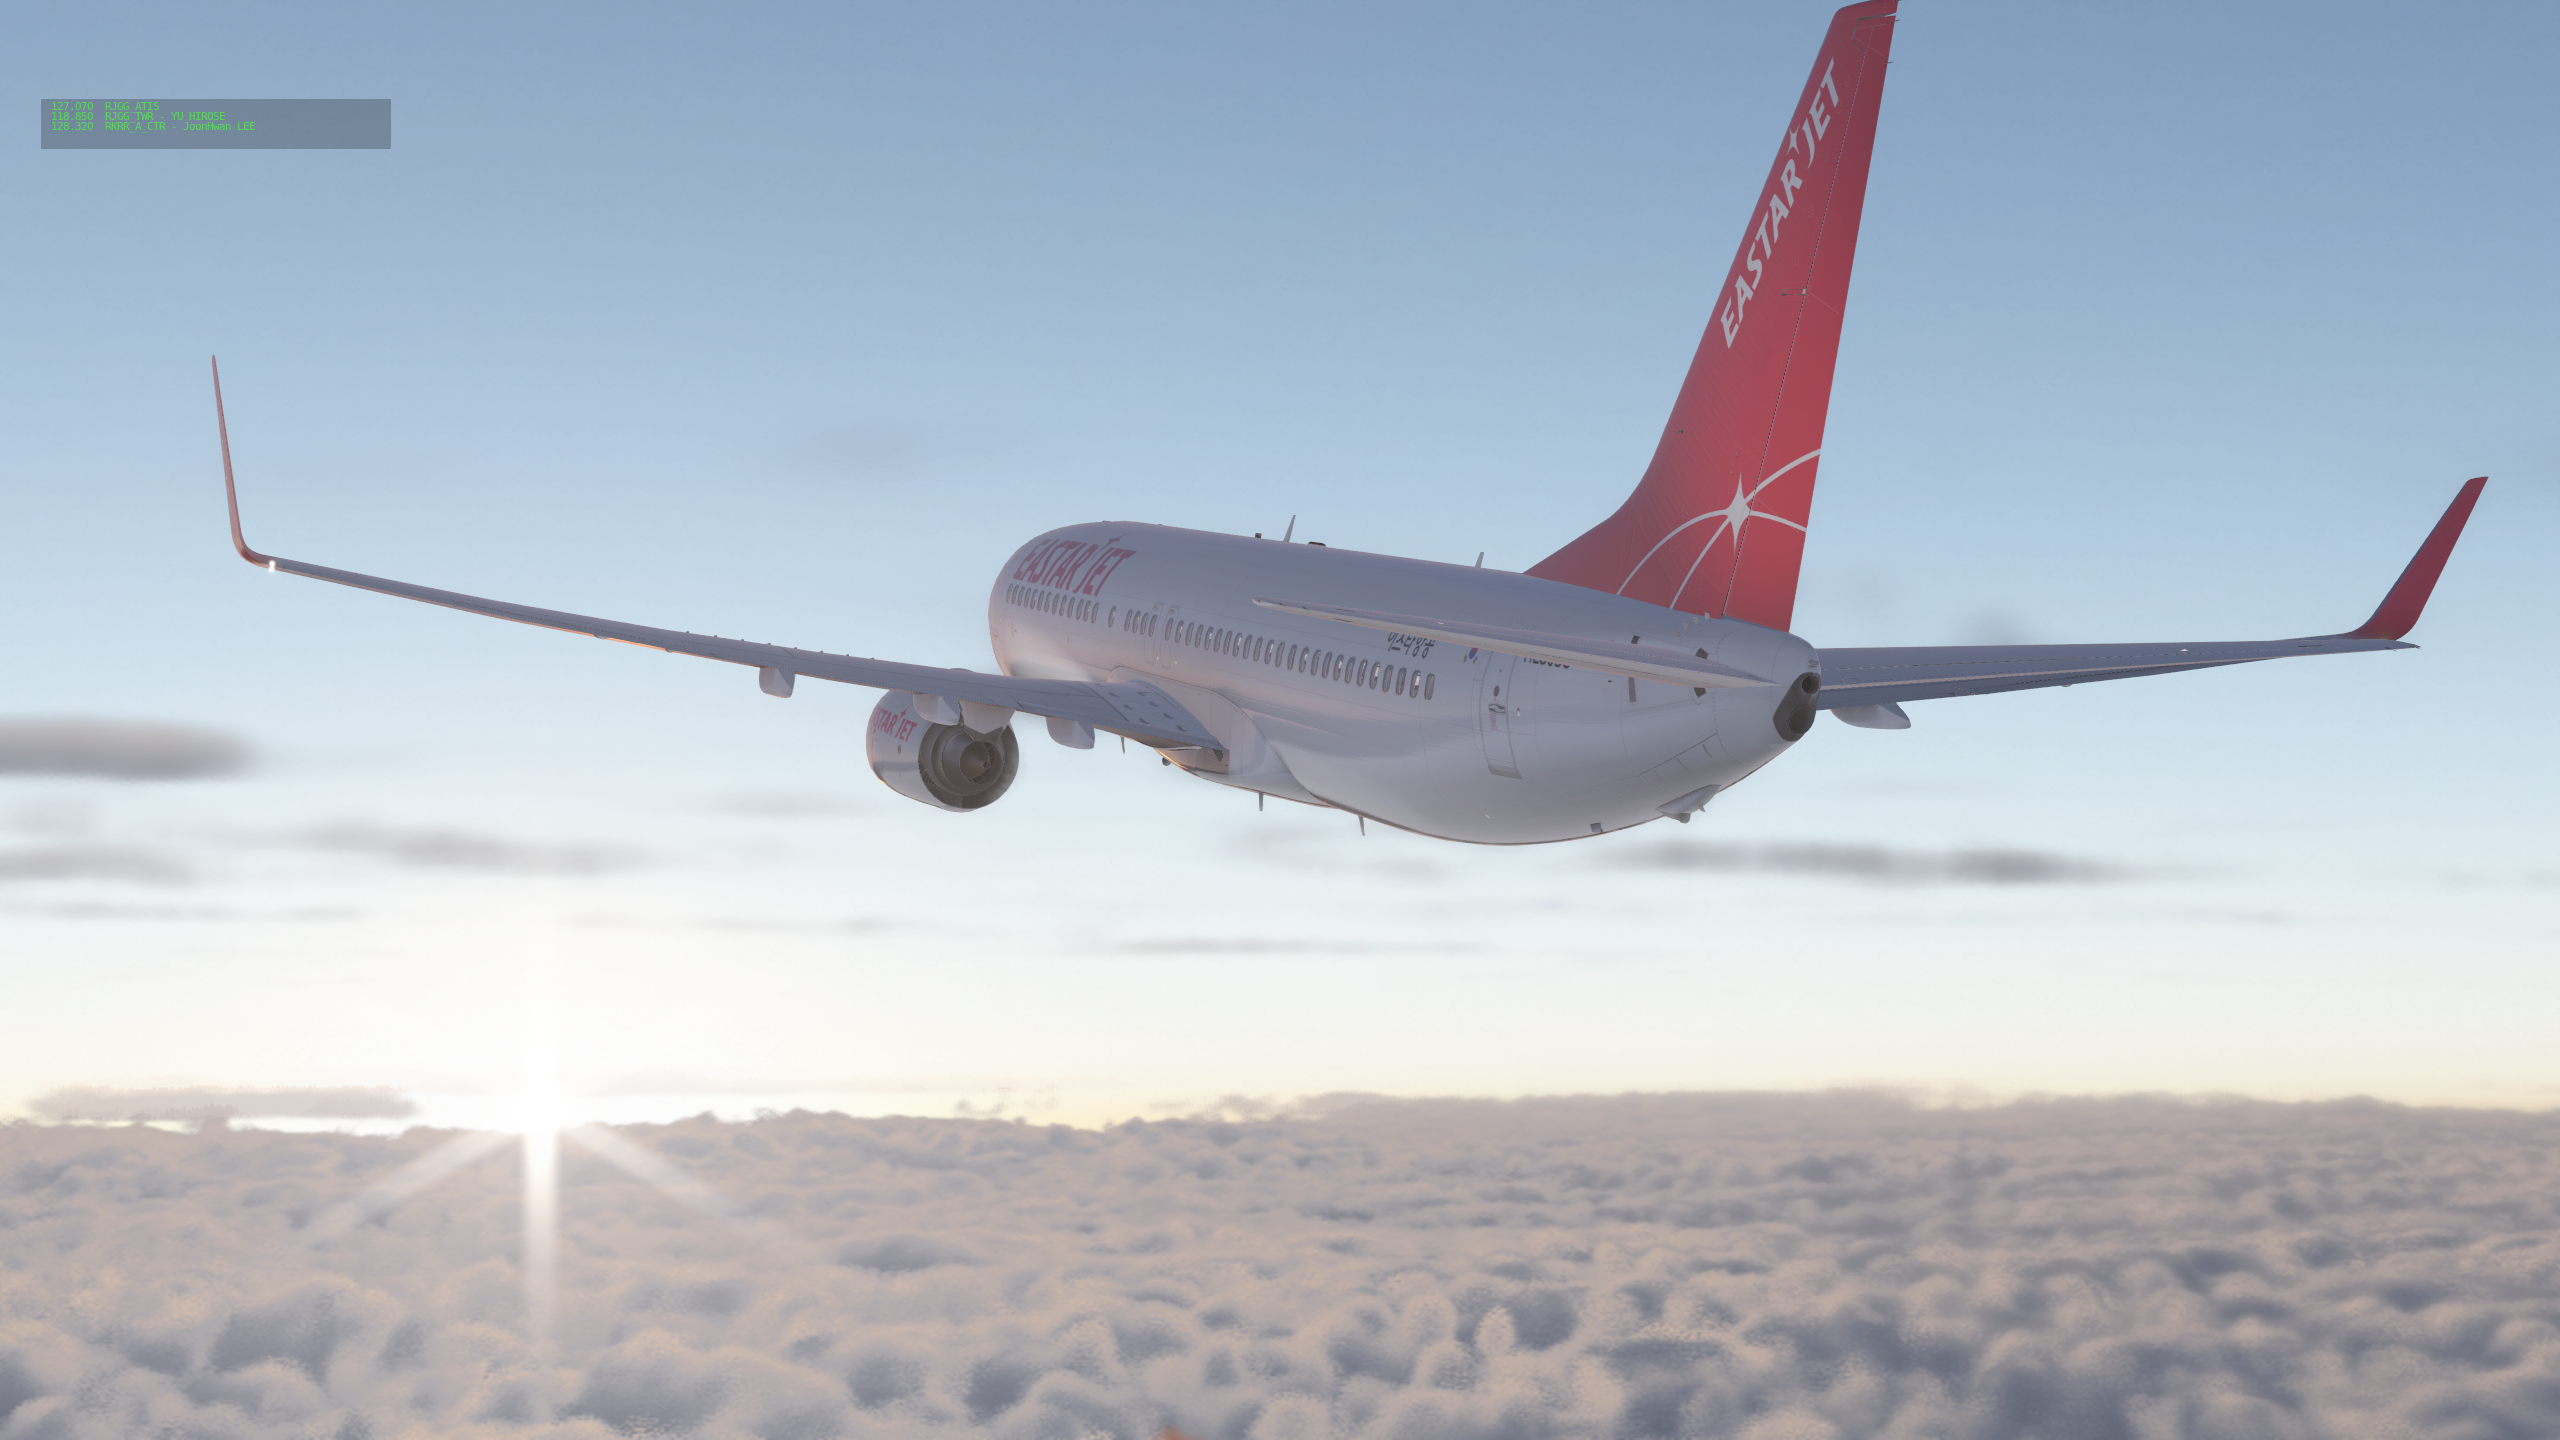 X-Plane Screenshot 2019.07.26 - 22.48.34.20.png